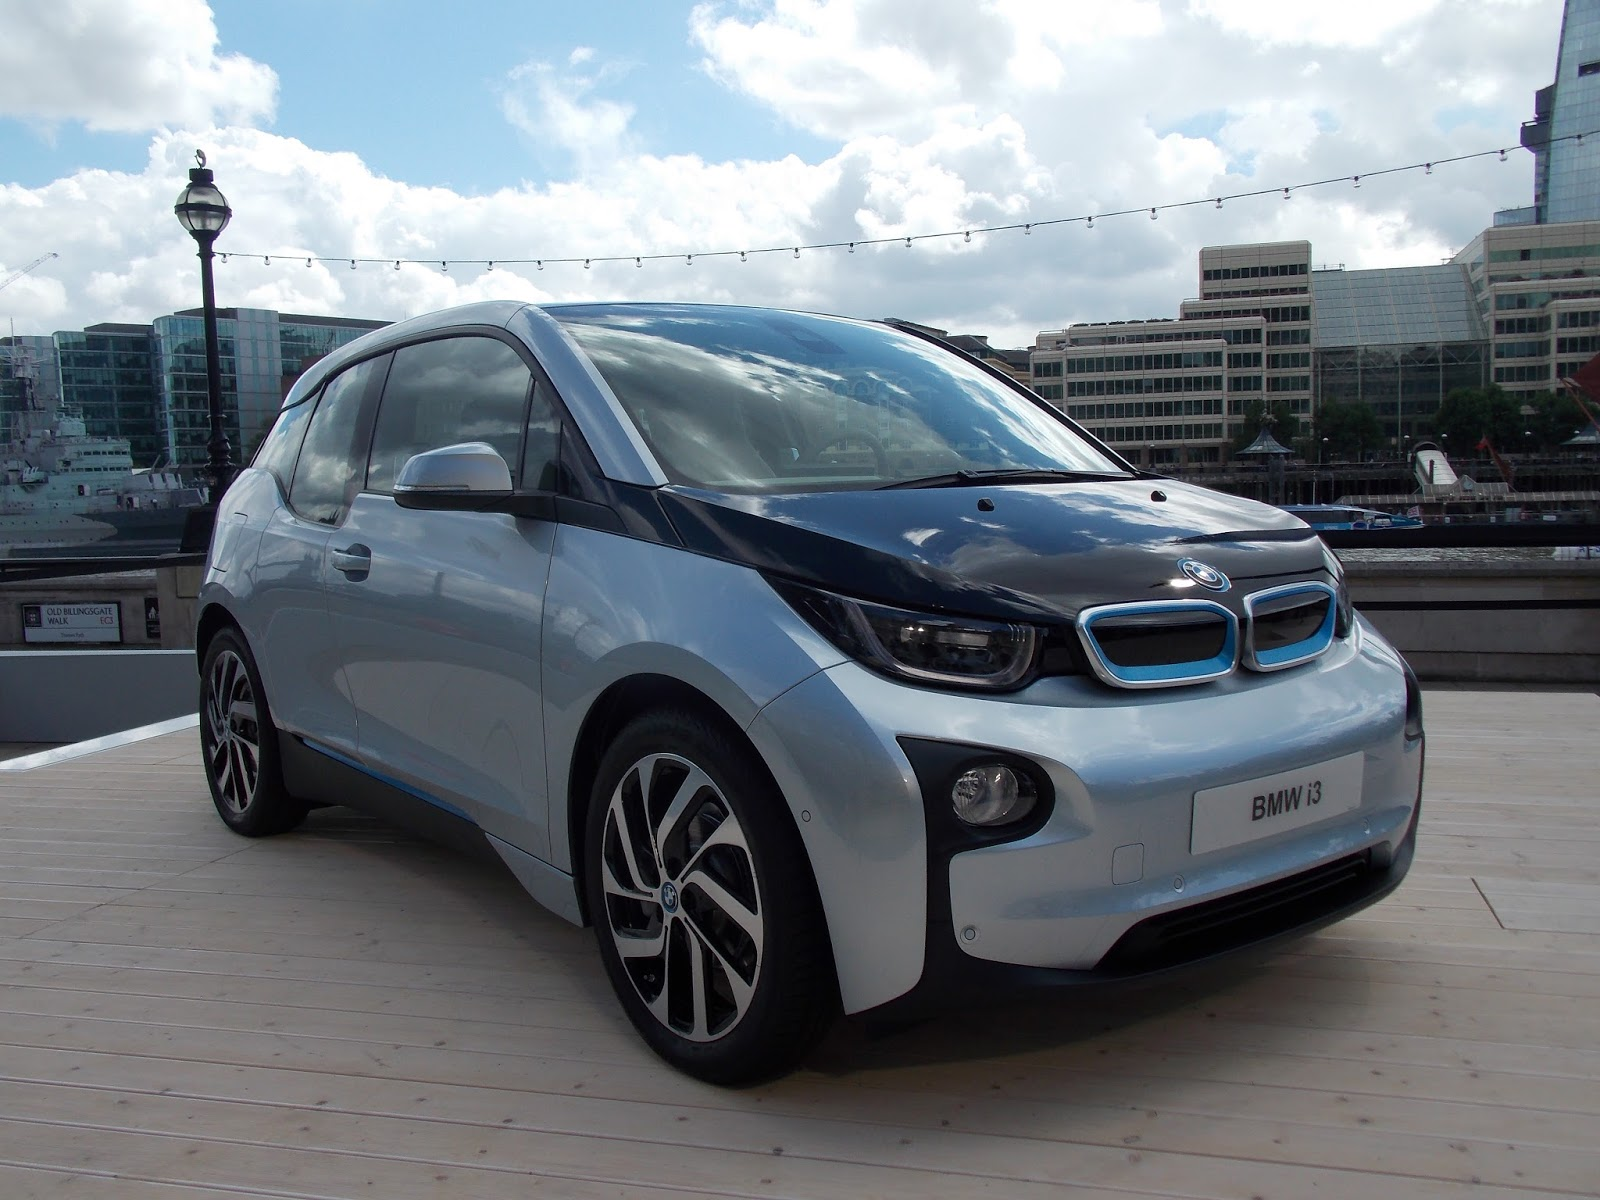 voiture du futur bmw i3 n e lectrique de a z. Black Bedroom Furniture Sets. Home Design Ideas